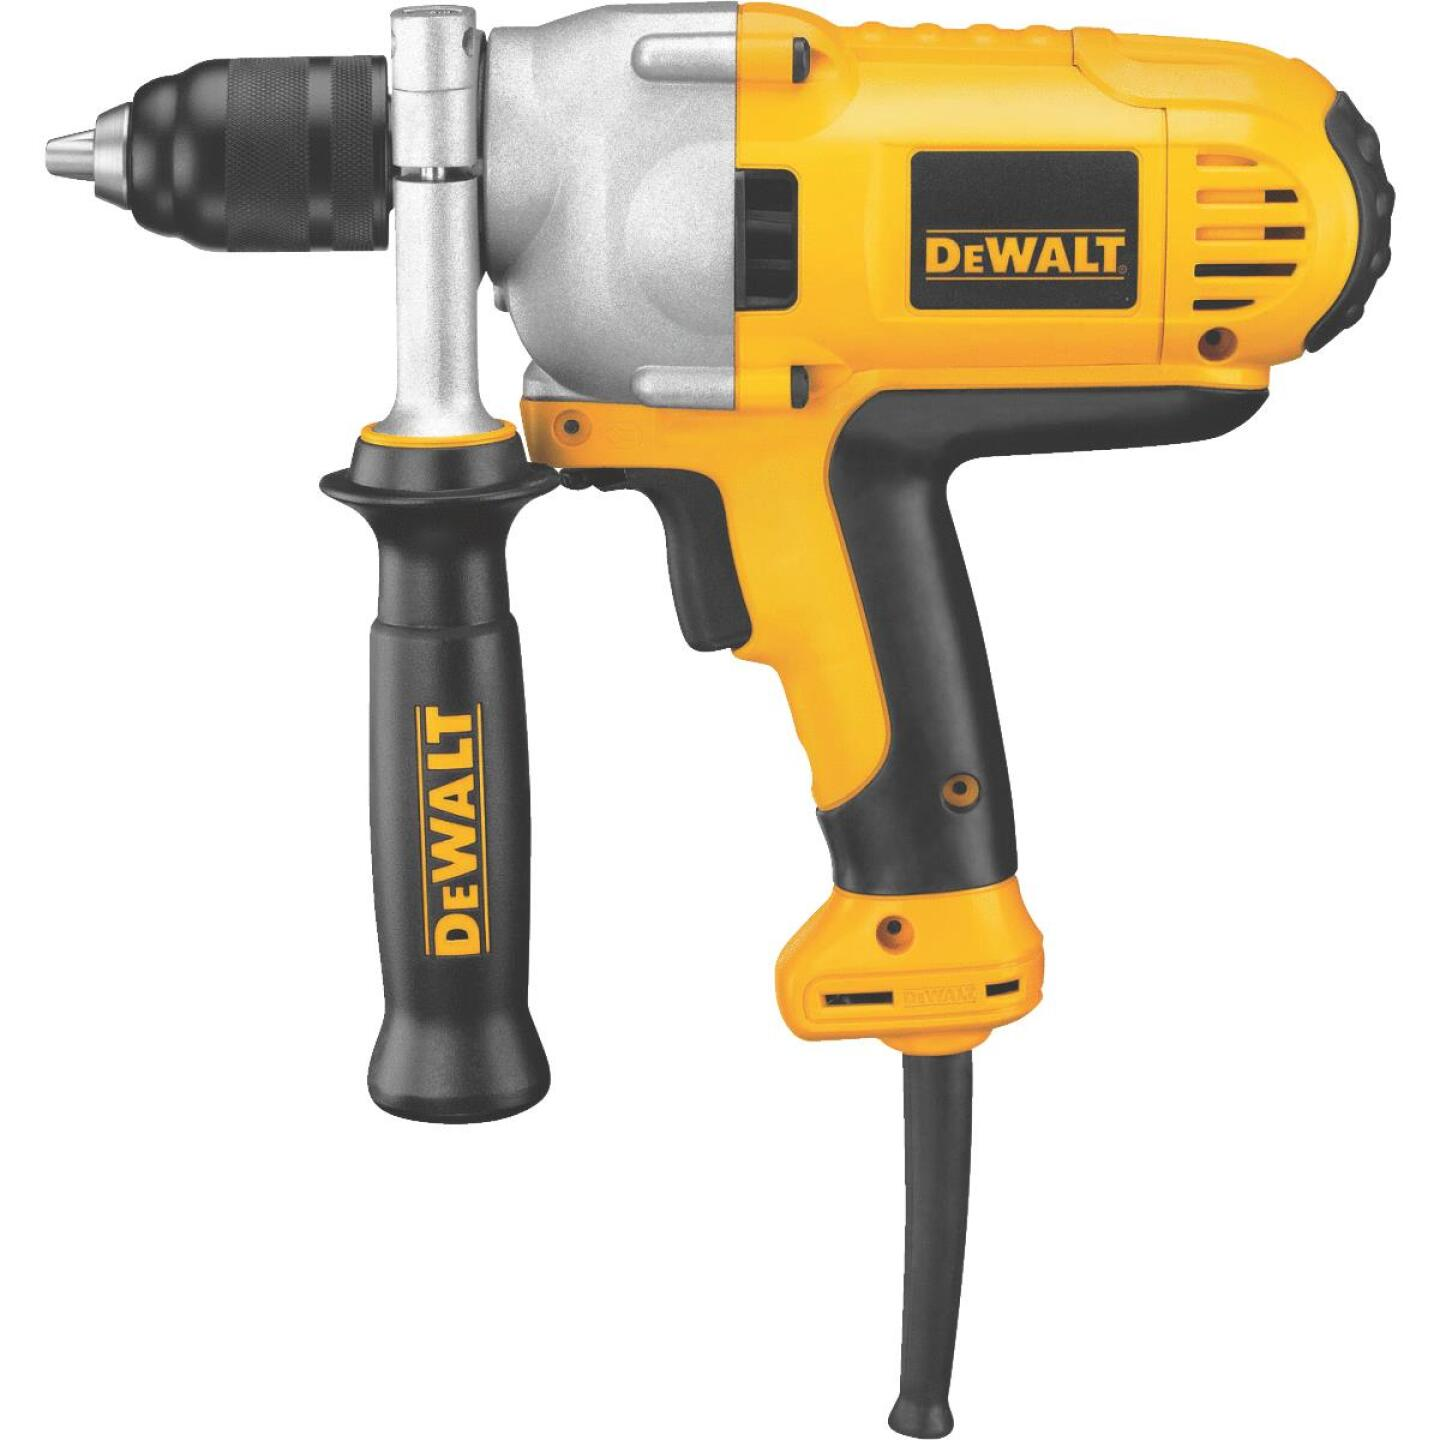 DeWalt 1/2 In. 10-Amp Keyless Electric Drill with Mid-Handle Grip Image 1